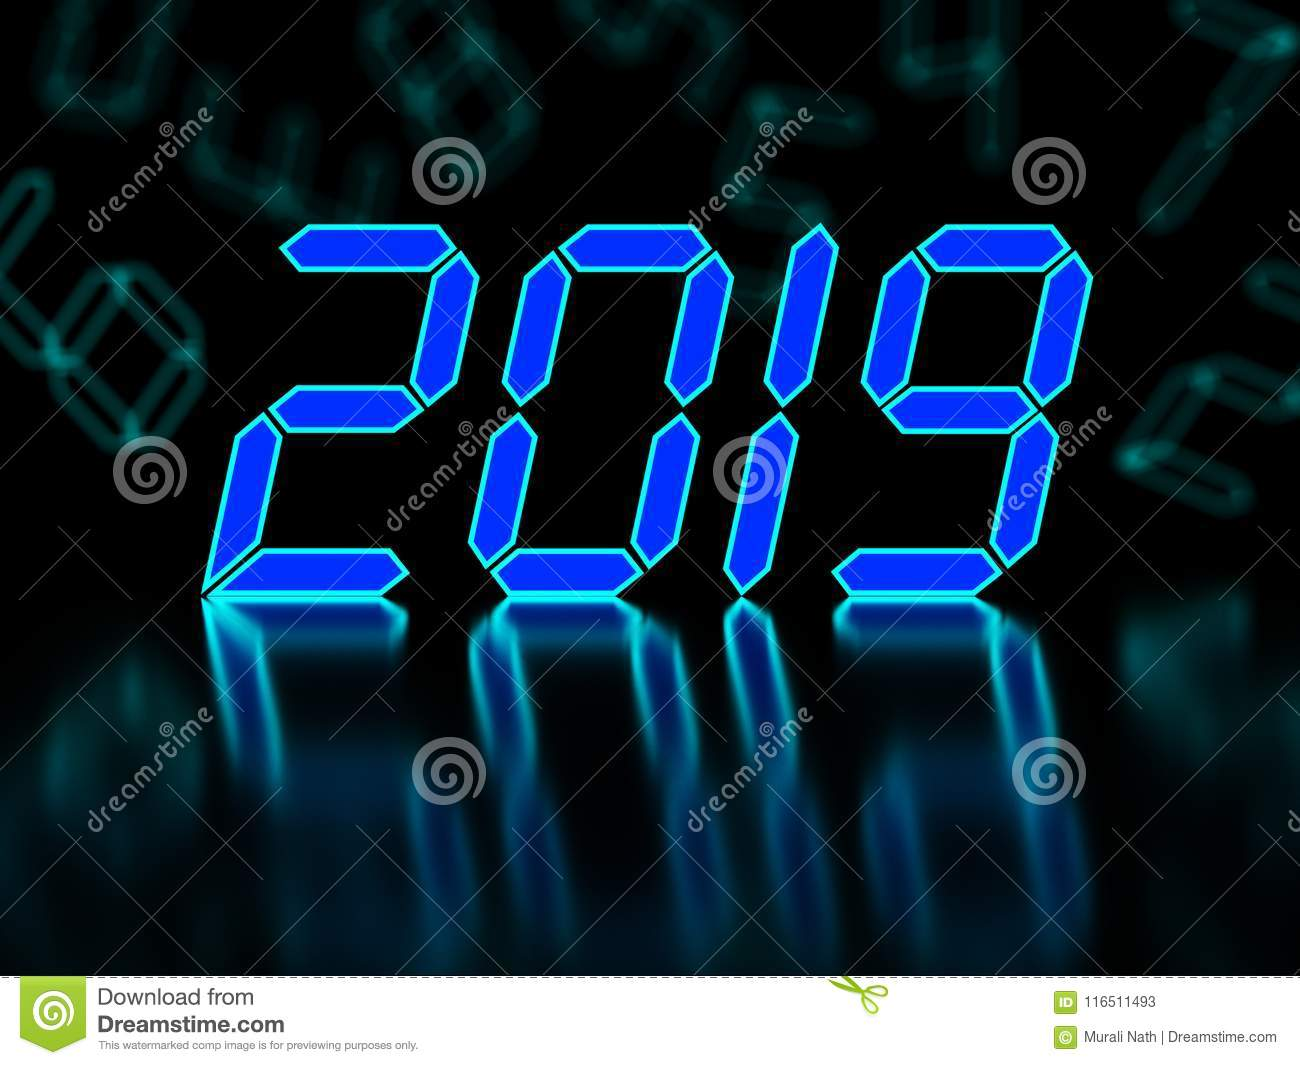 New Year 2019 - 3D Rendered Image Stock Illustration